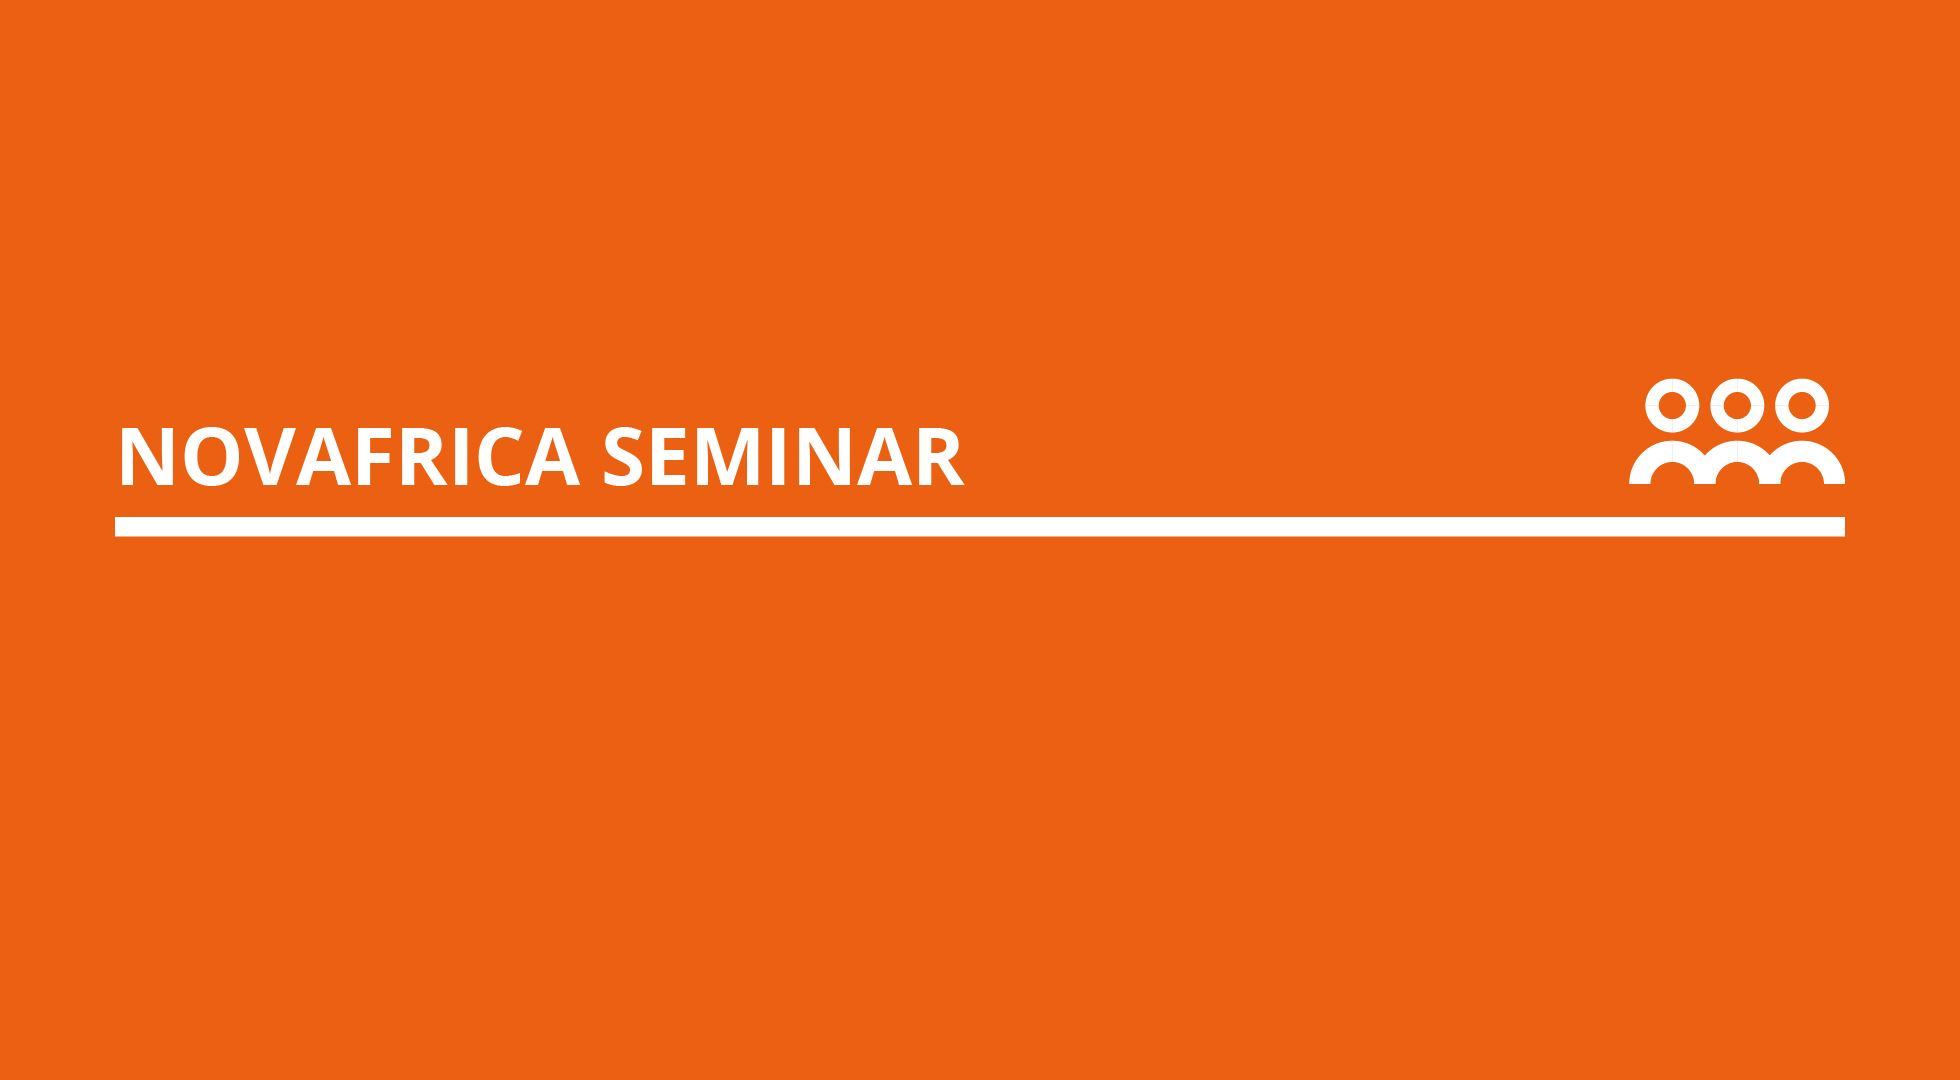 NOVAFRICA Seminars